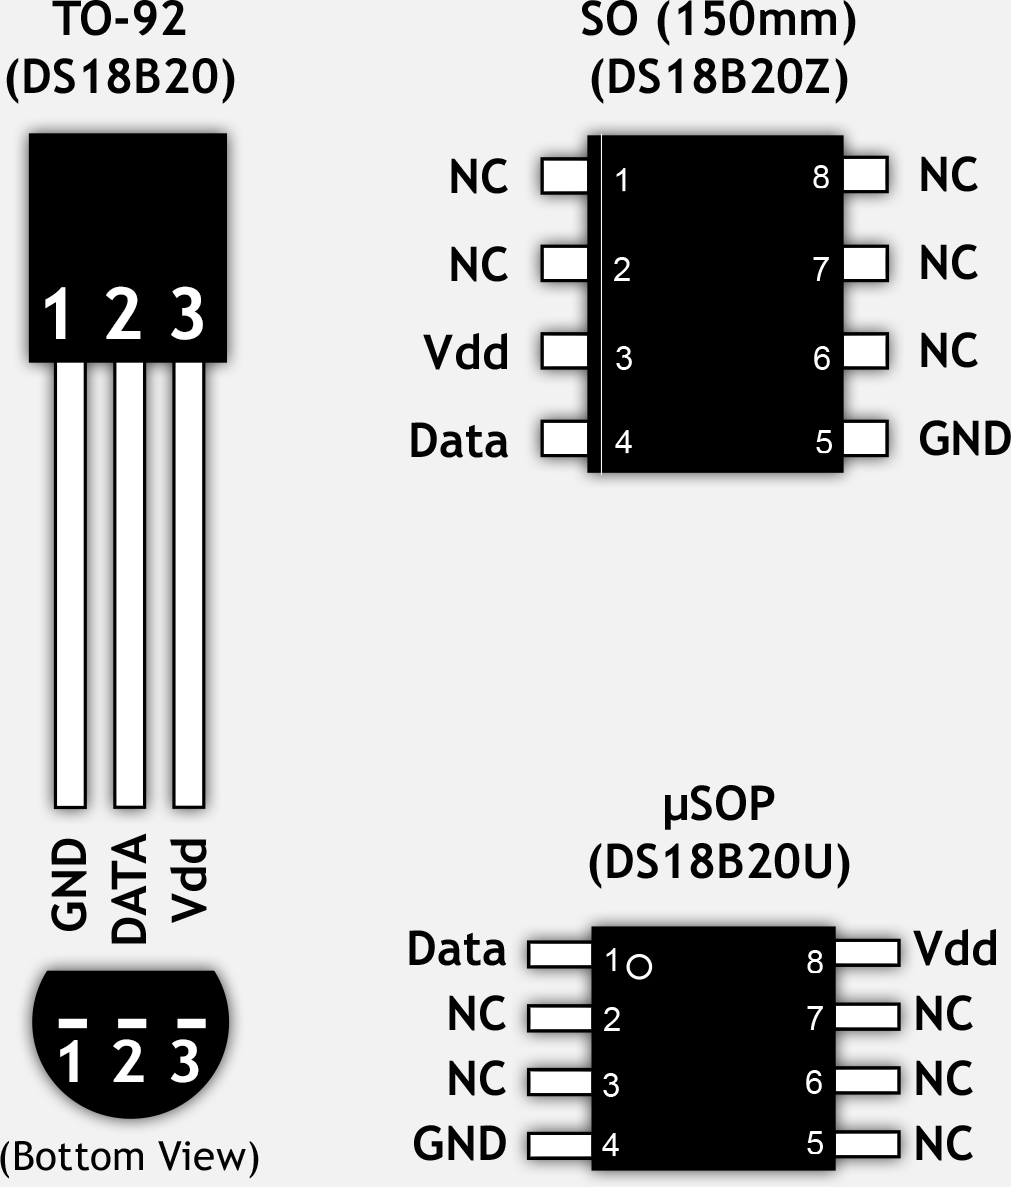 hight resolution of ds18b20 available packages